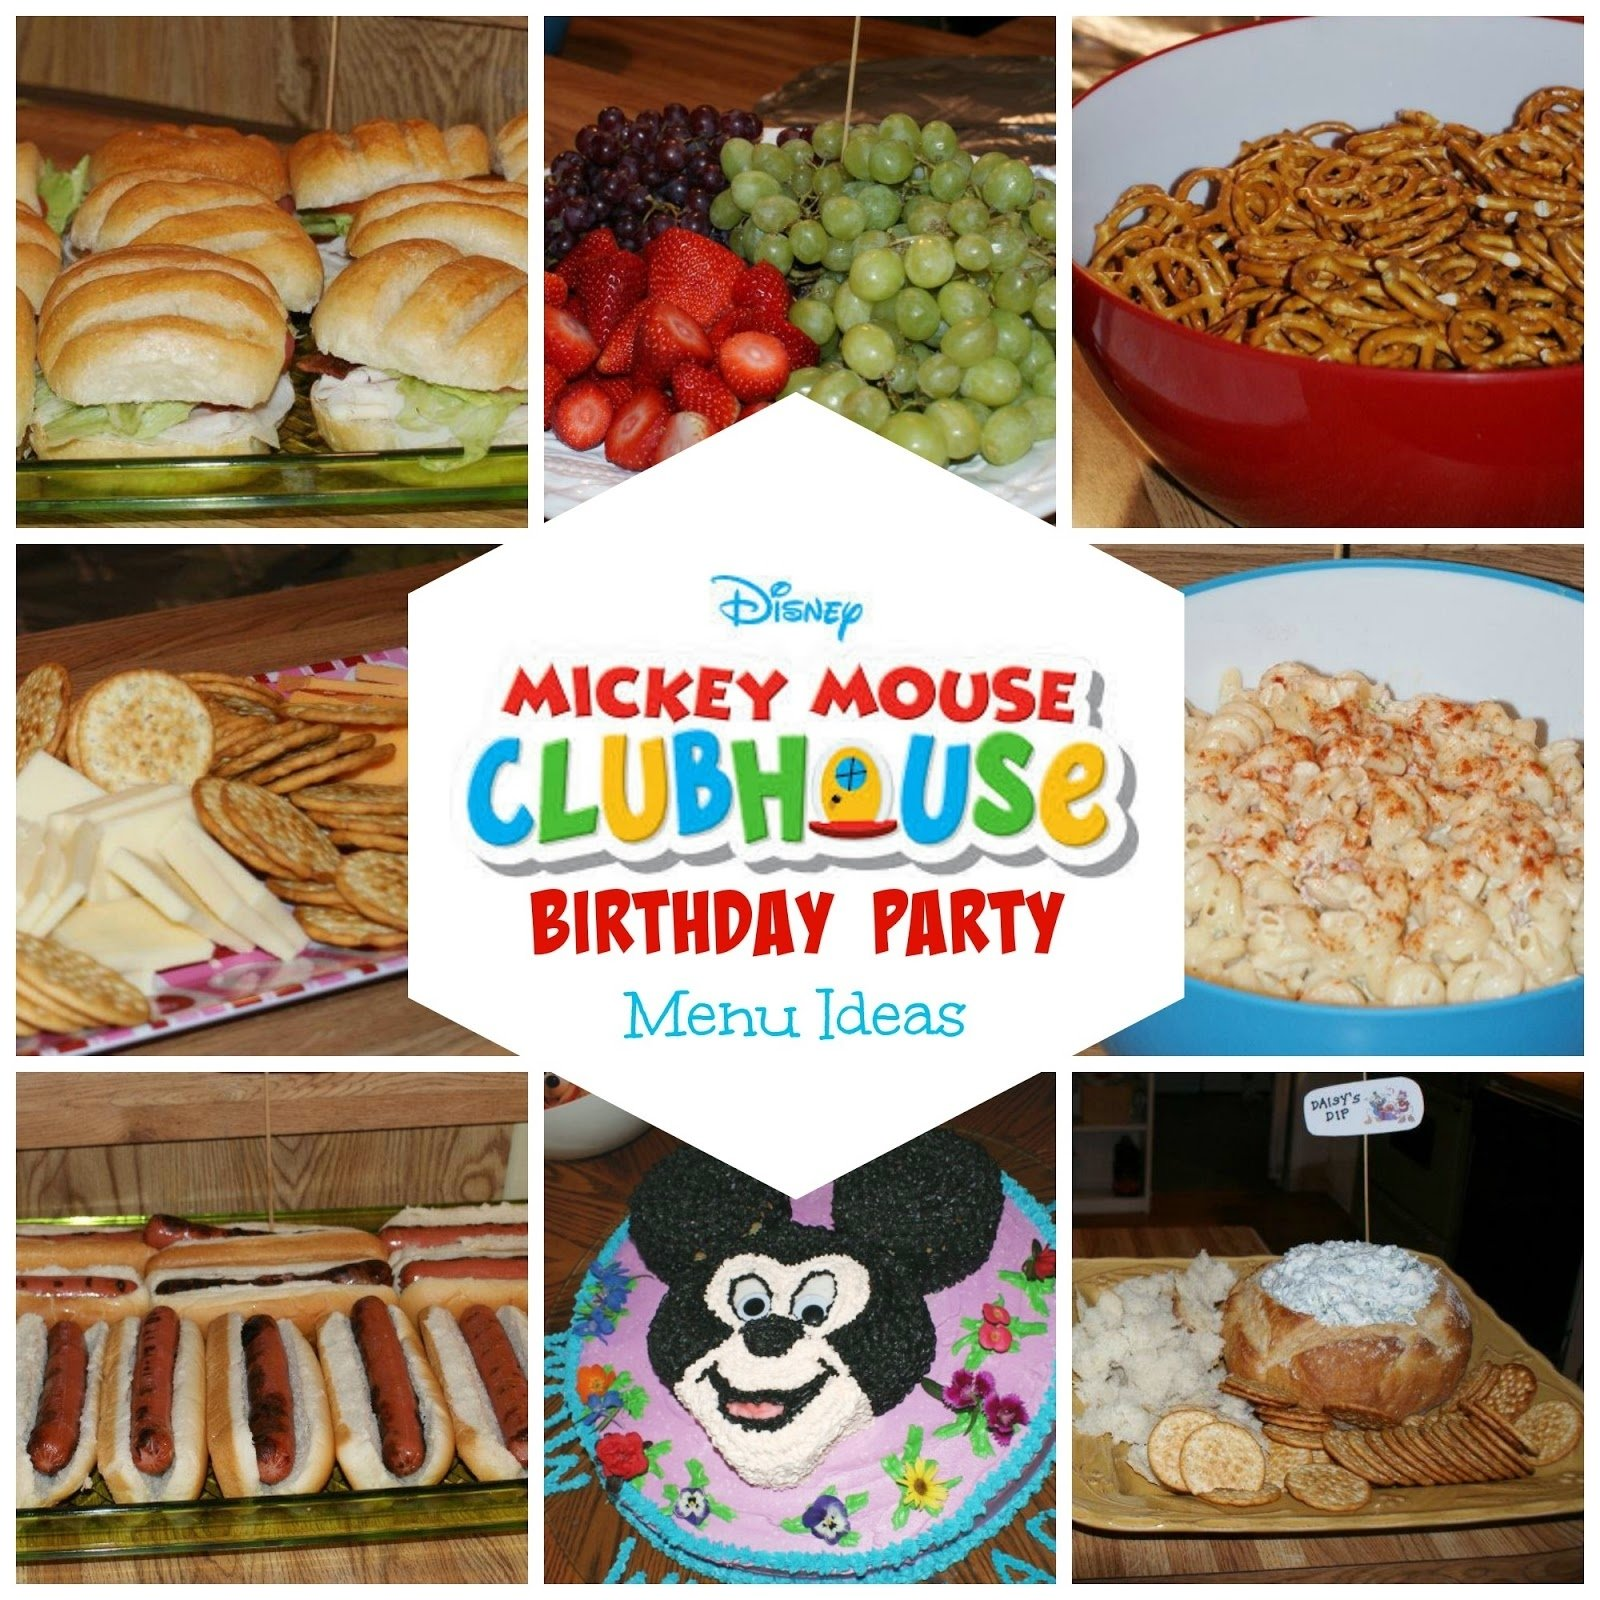 10 Nice Minnie Mouse Party Food Ideas 8 mickey mouse birthday party menu ideas the two bite club 4 2021